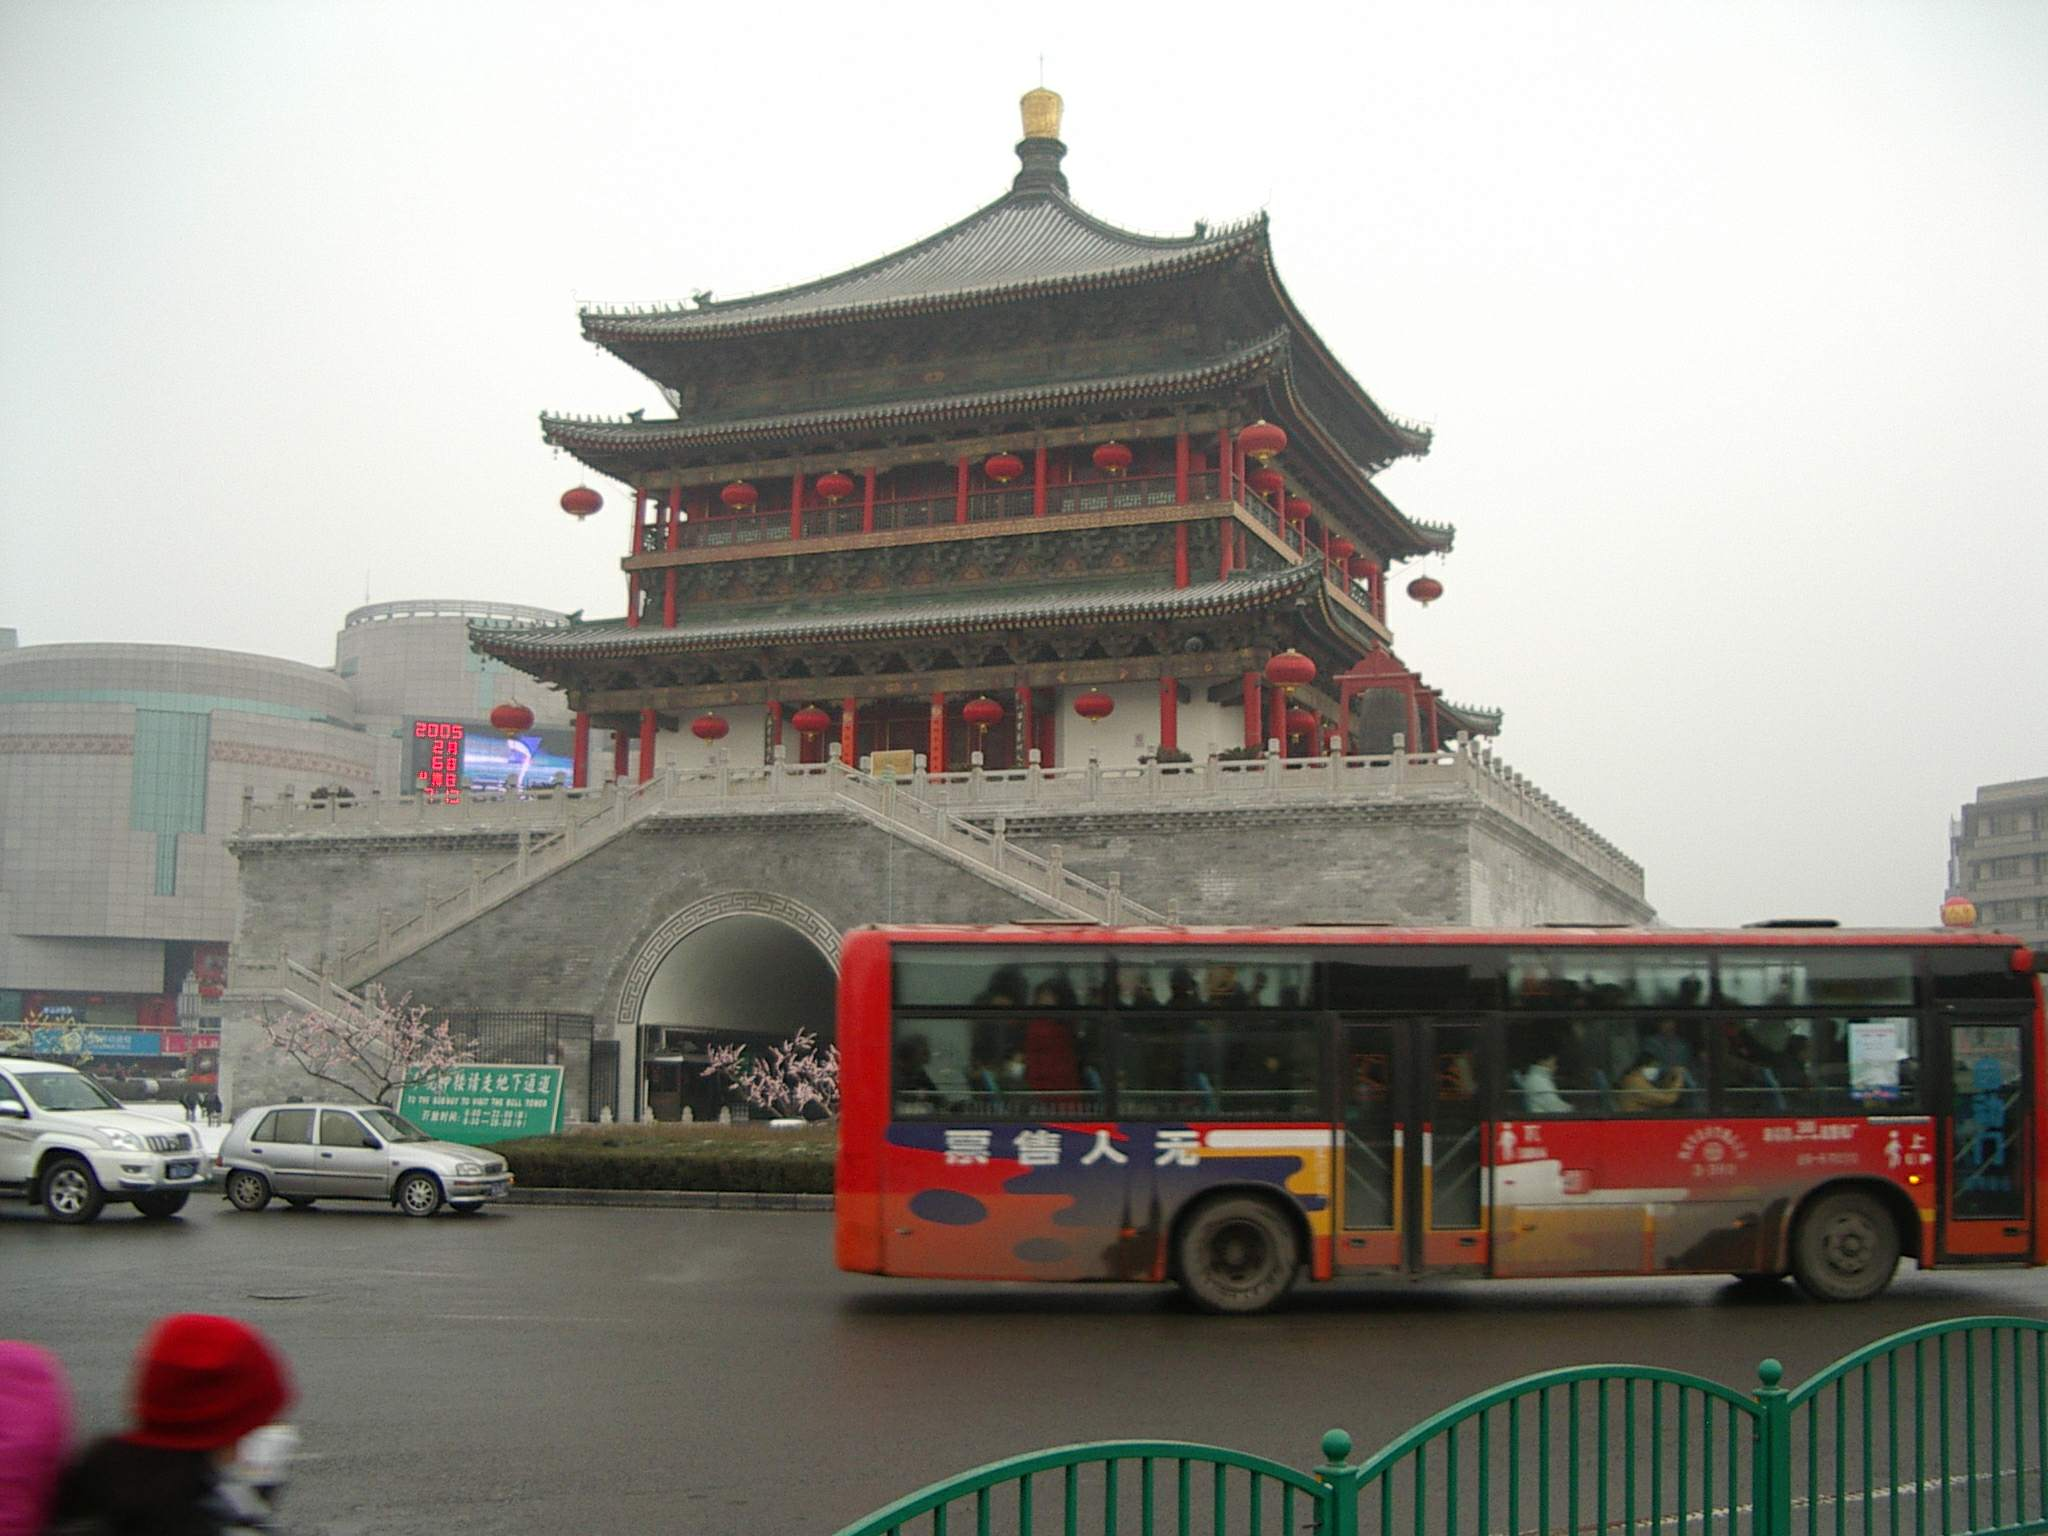 Xi'an famous bell tower in the city center.